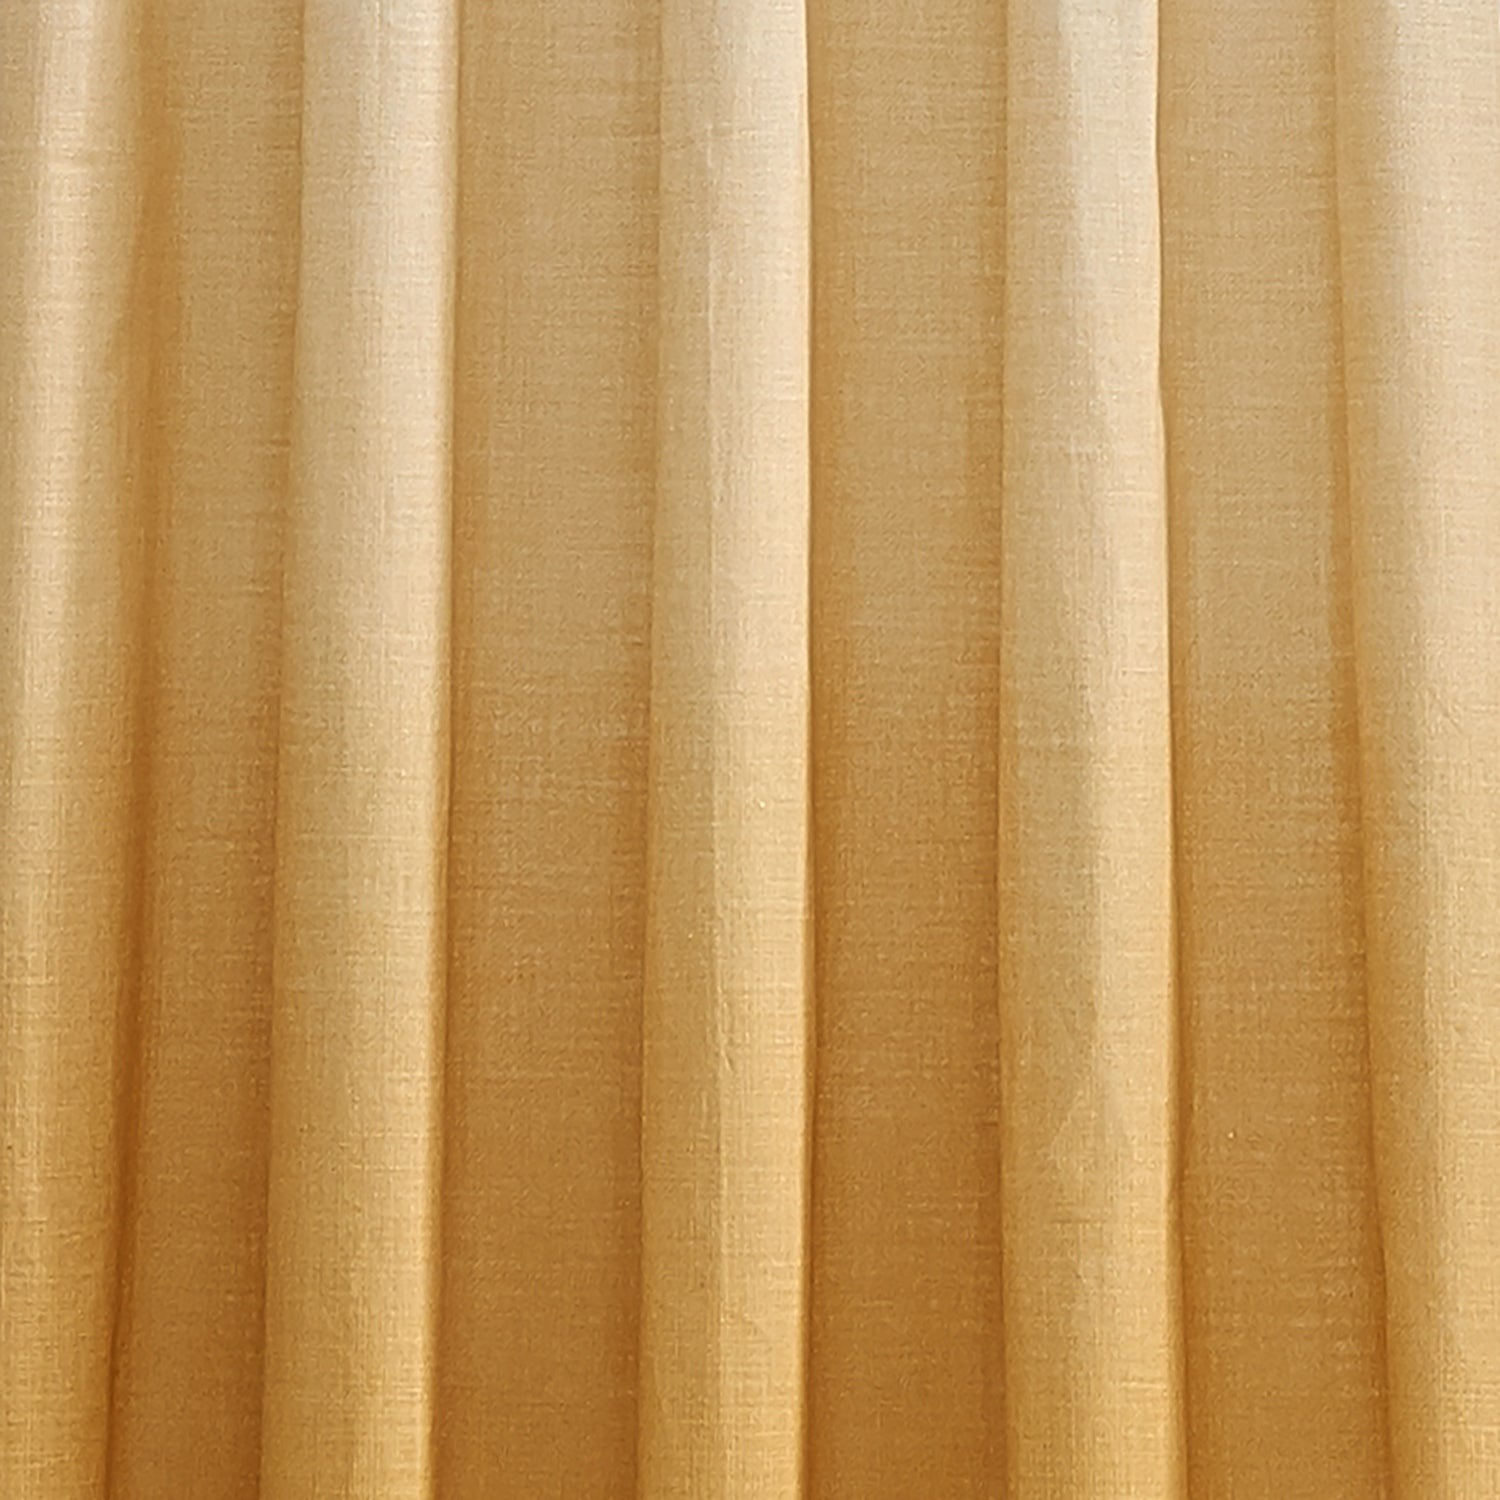 Vue Signature Arashi Ombre Embroidery Curtain Panel Throughout Ombre Embroidery Curtain Panels (View 4 of 20)